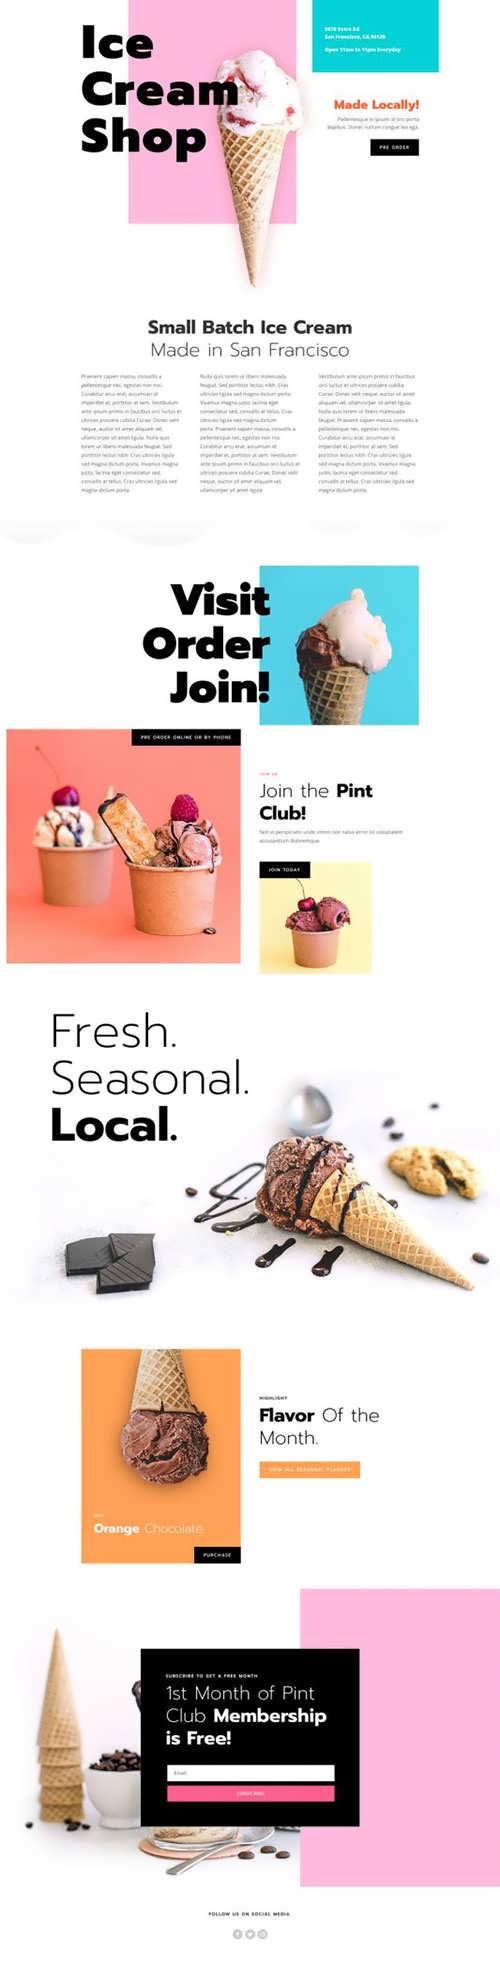 ice cream shop landing page